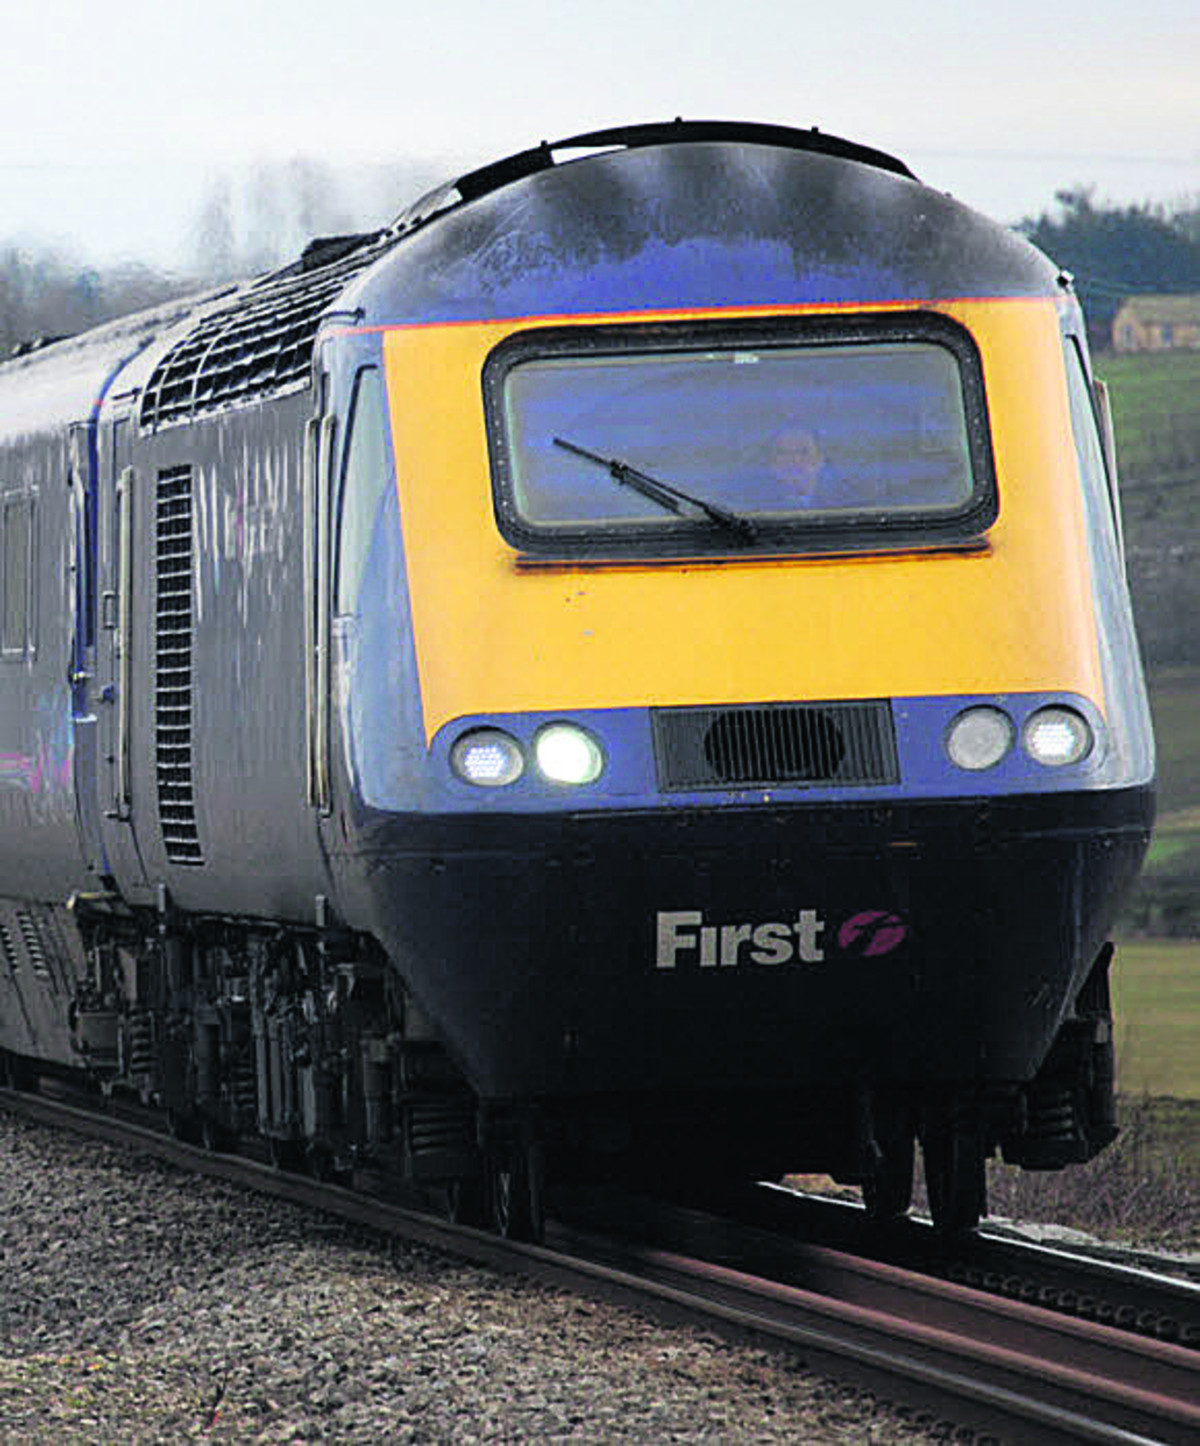 Customers were not satisfied with First Great Western, according to a poll